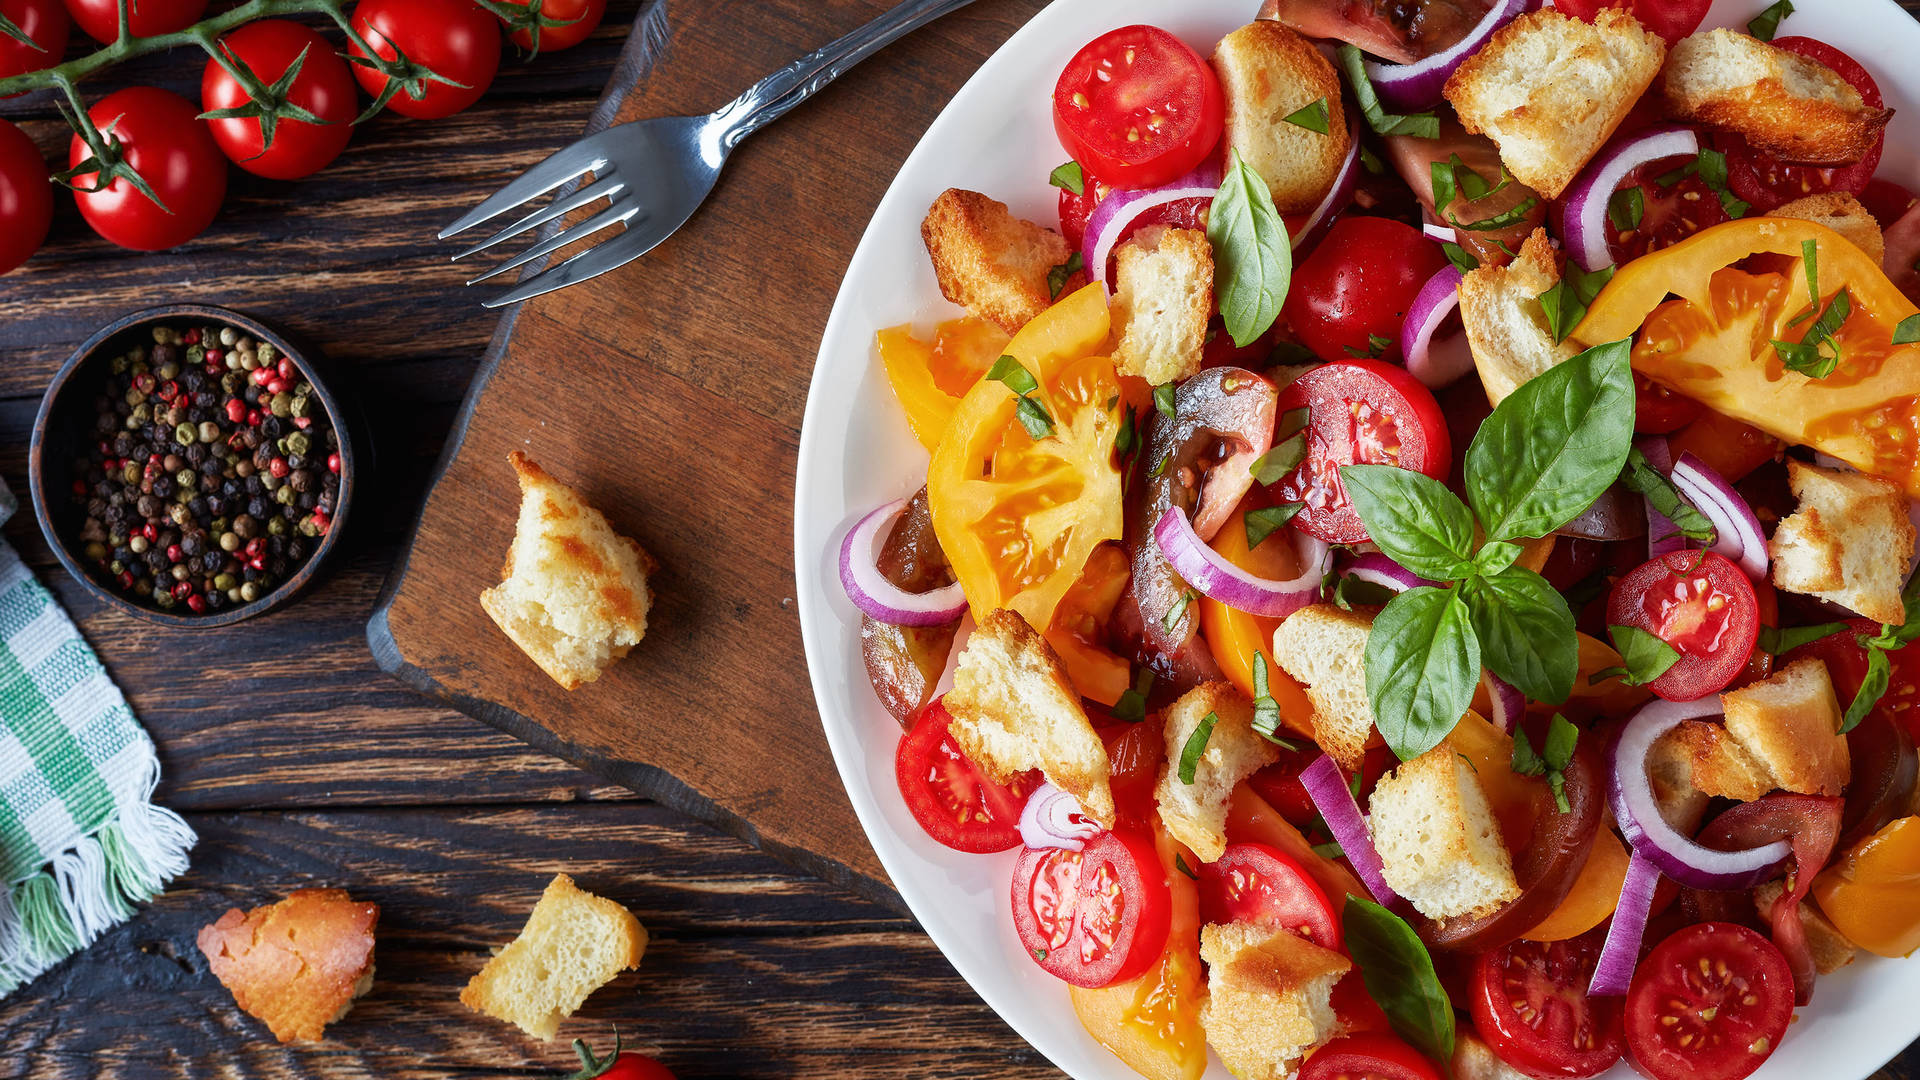 Traditional panzanella salad